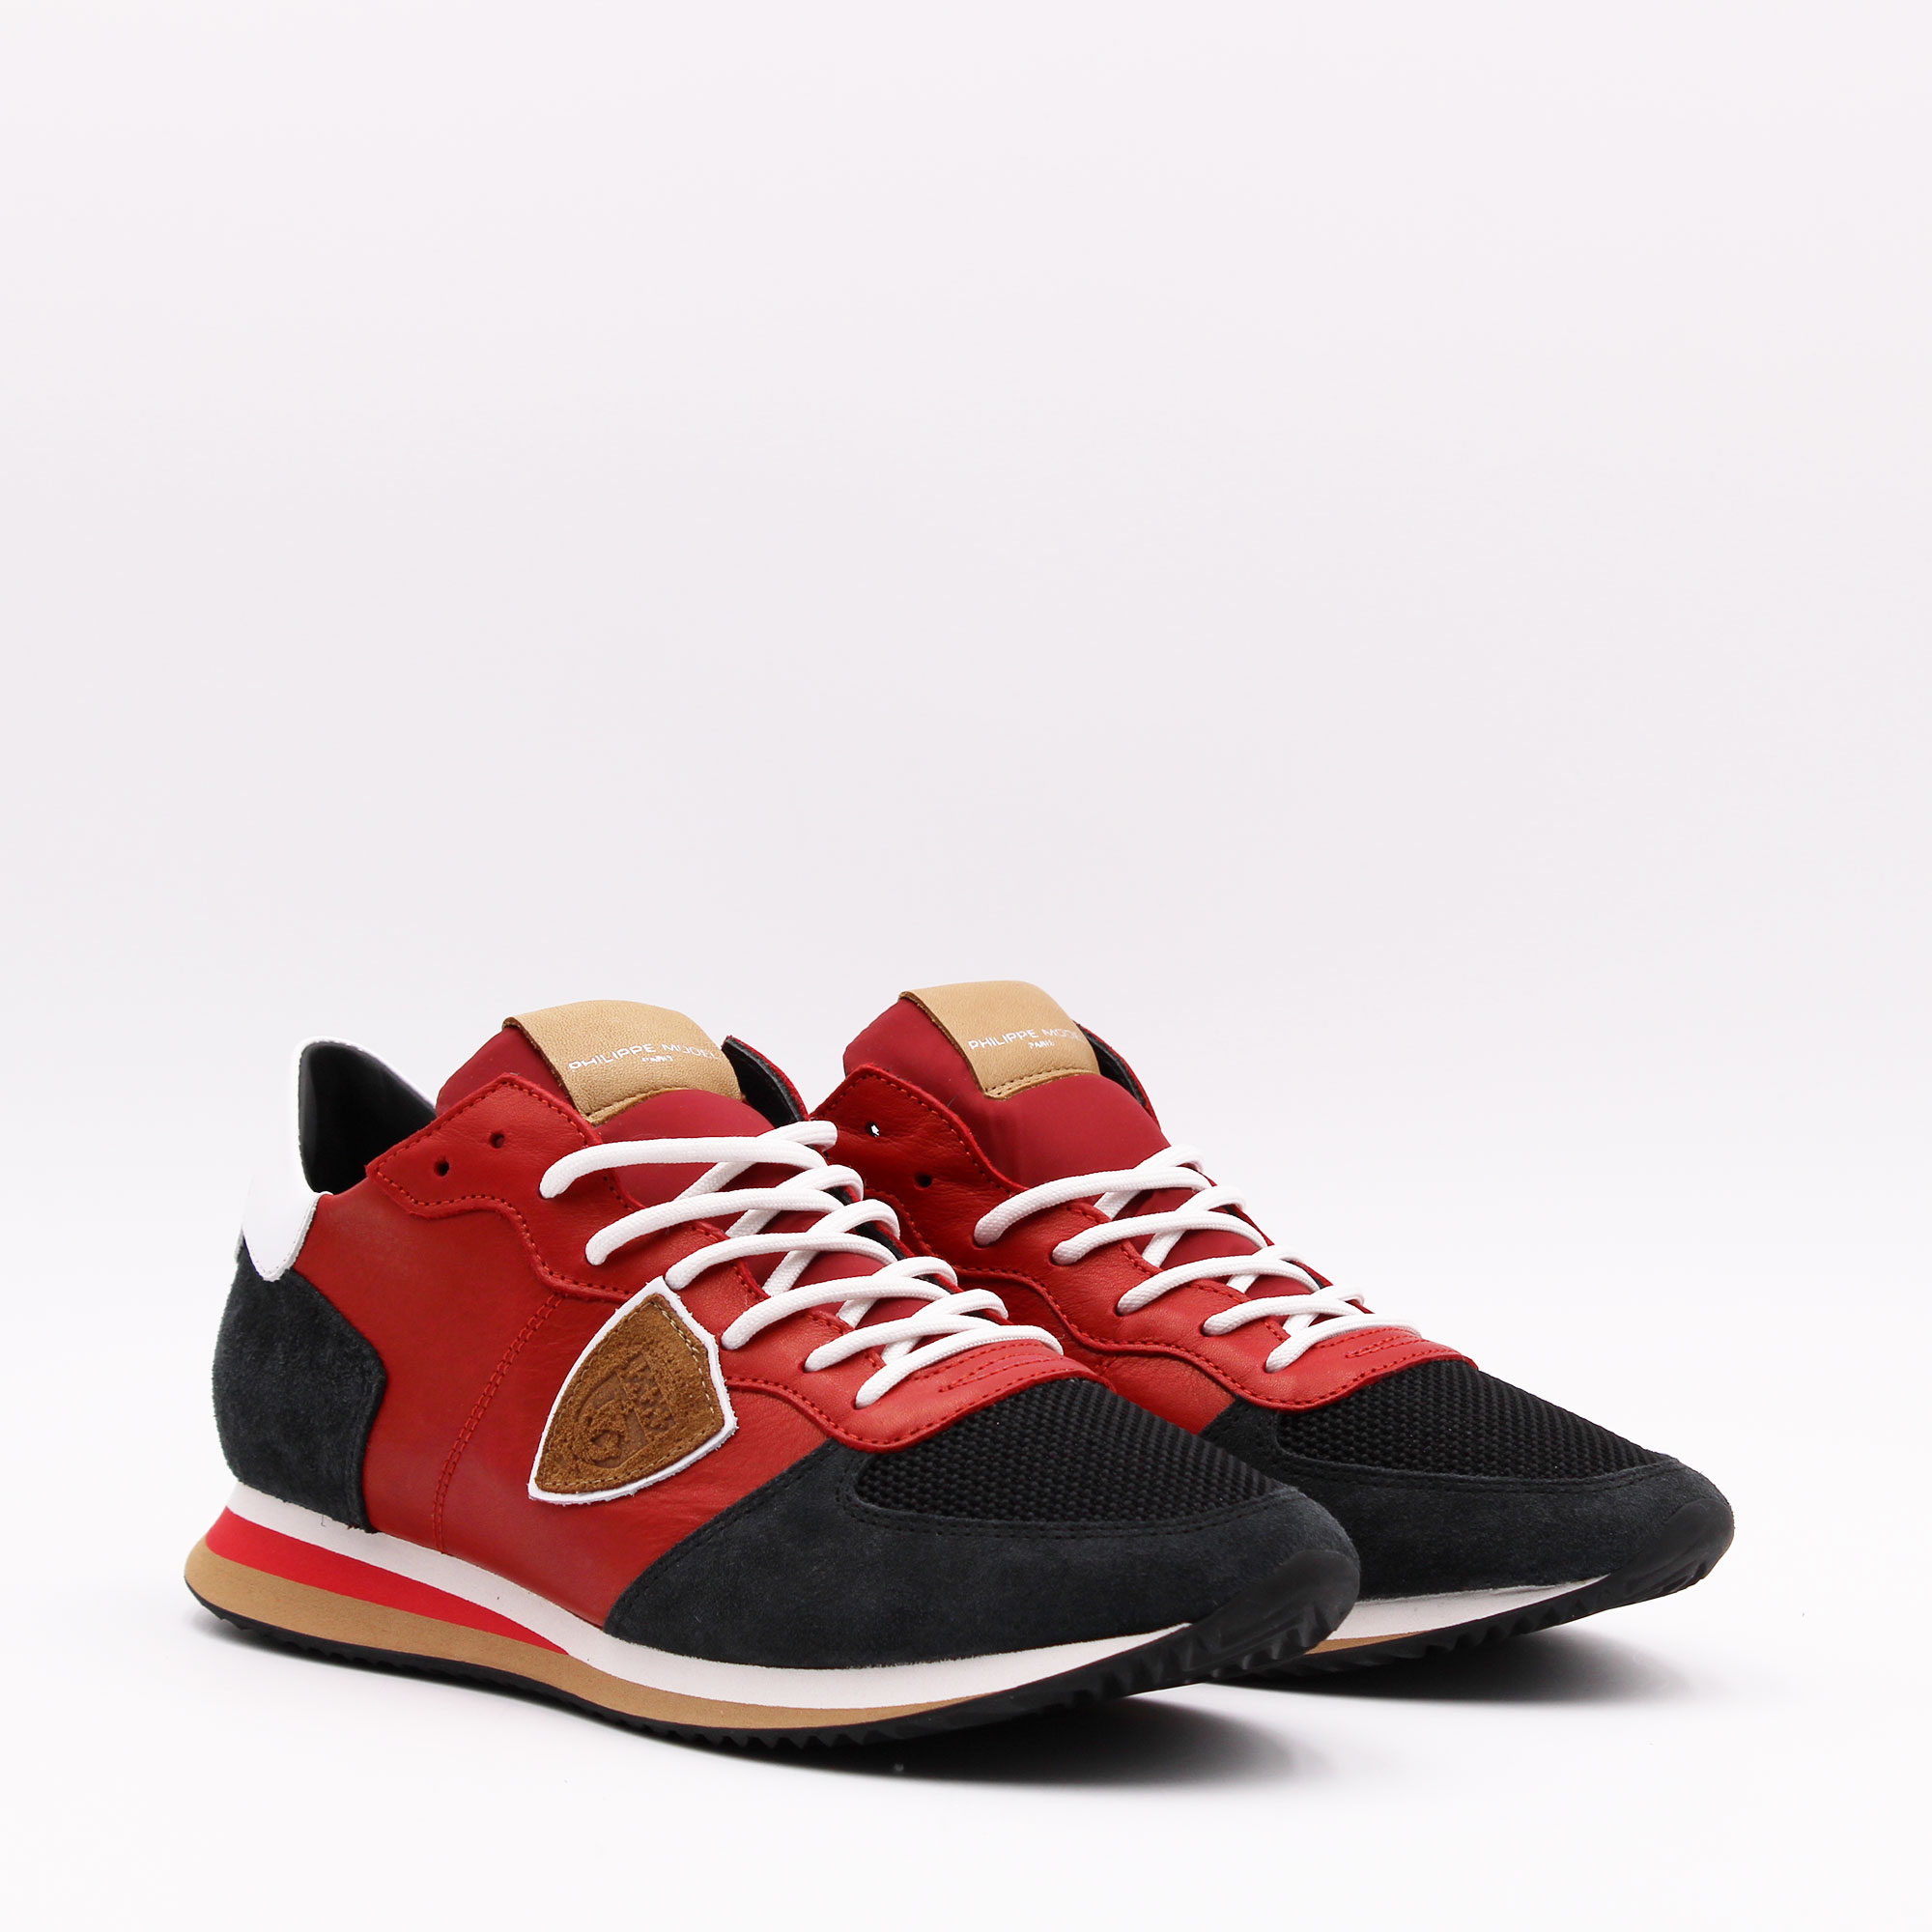 NEW COLLECTION- Trpx veau 70 rouge - Rosso/nero